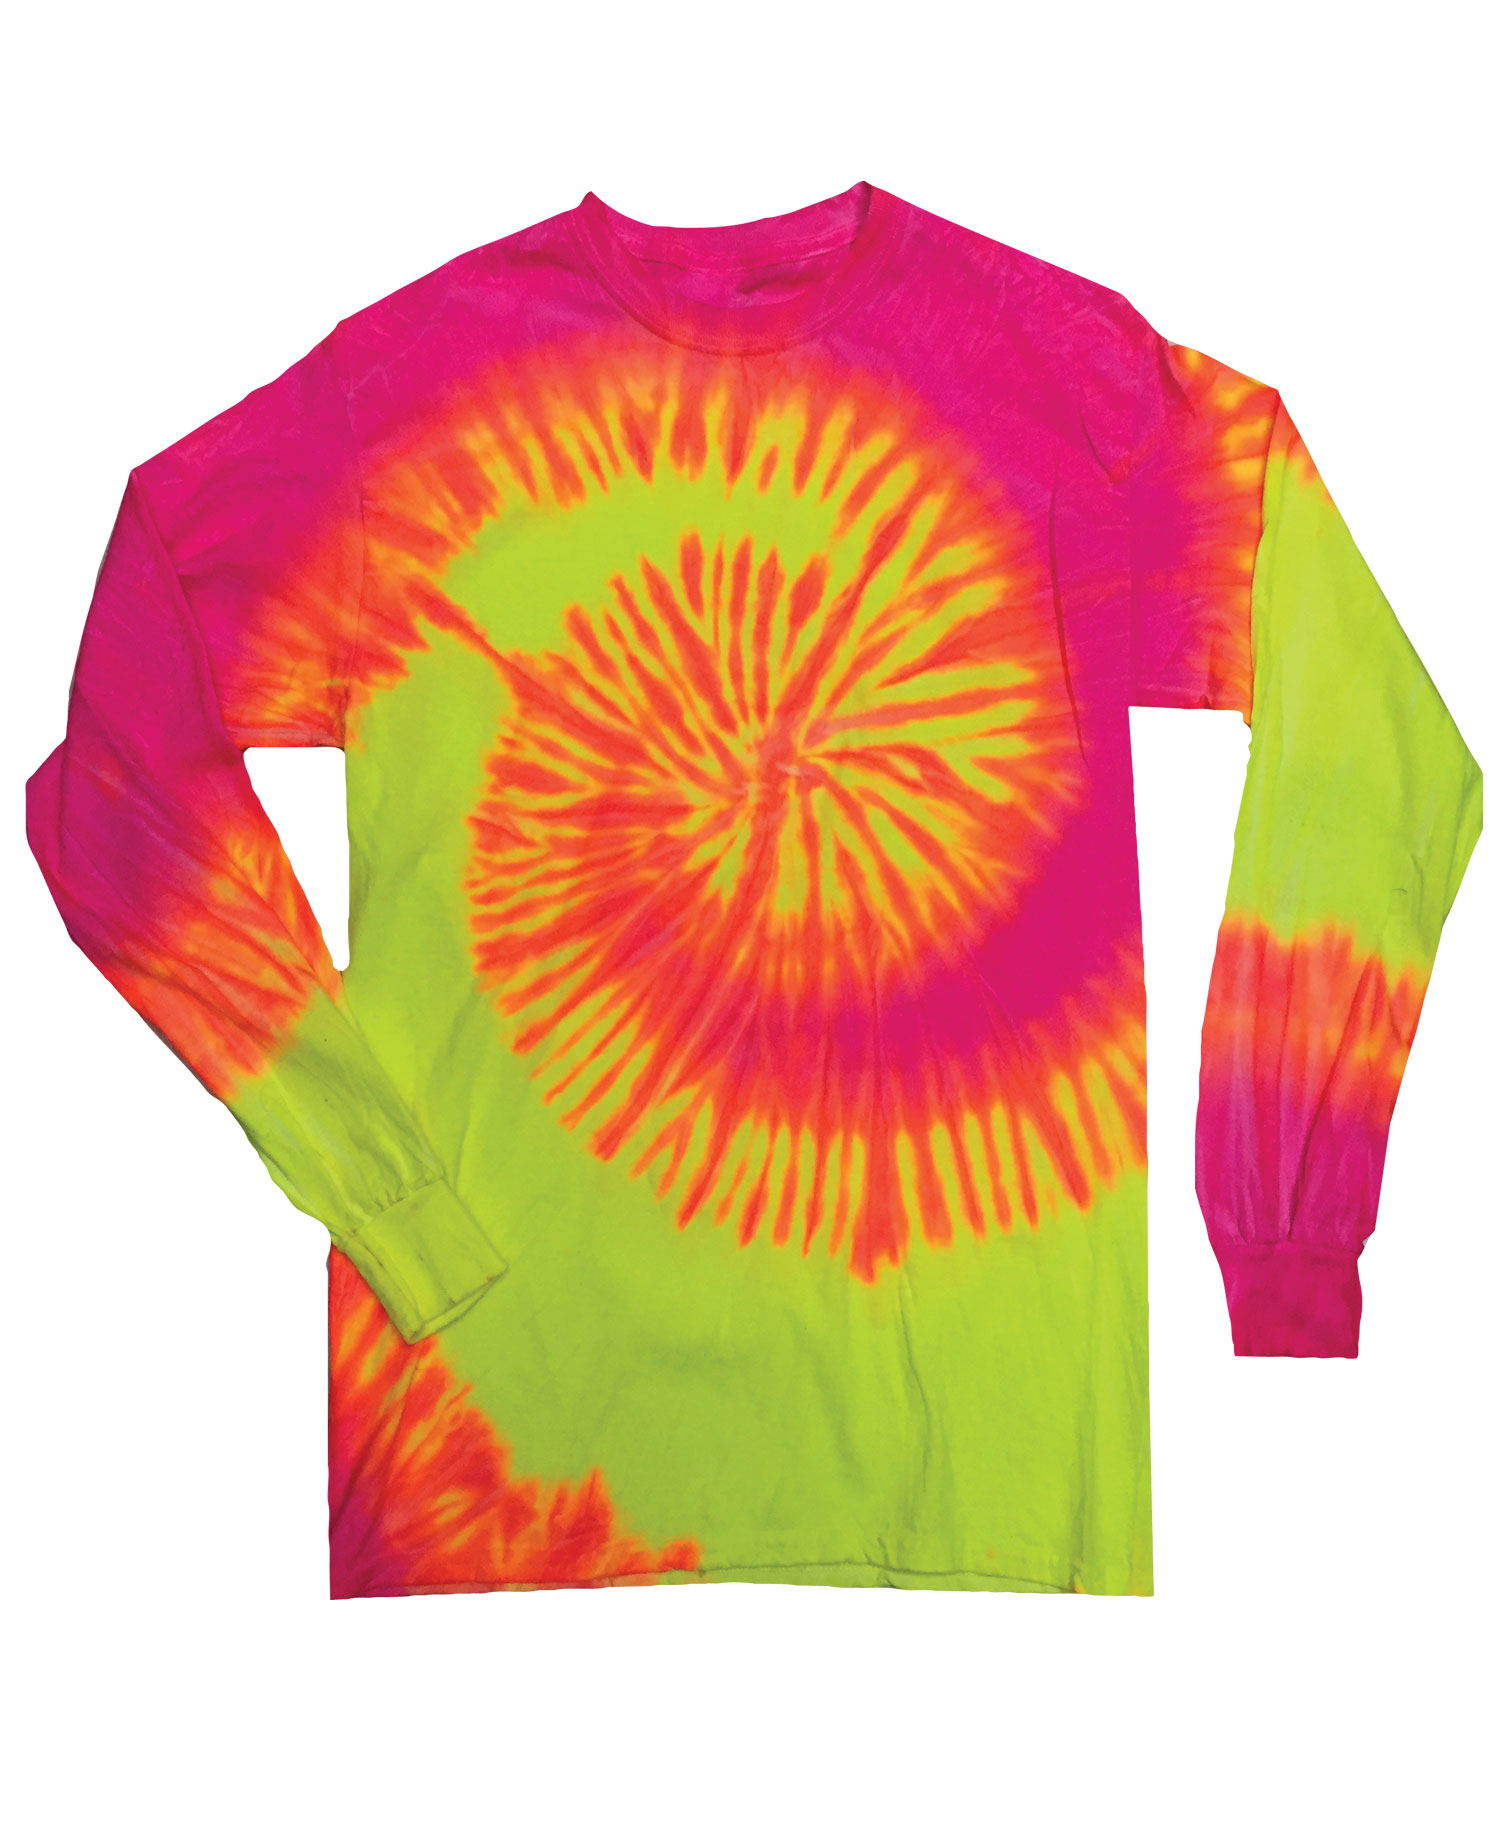 Colortone - T303P Fluorescent Swirl Long Sleeve Tie Dye